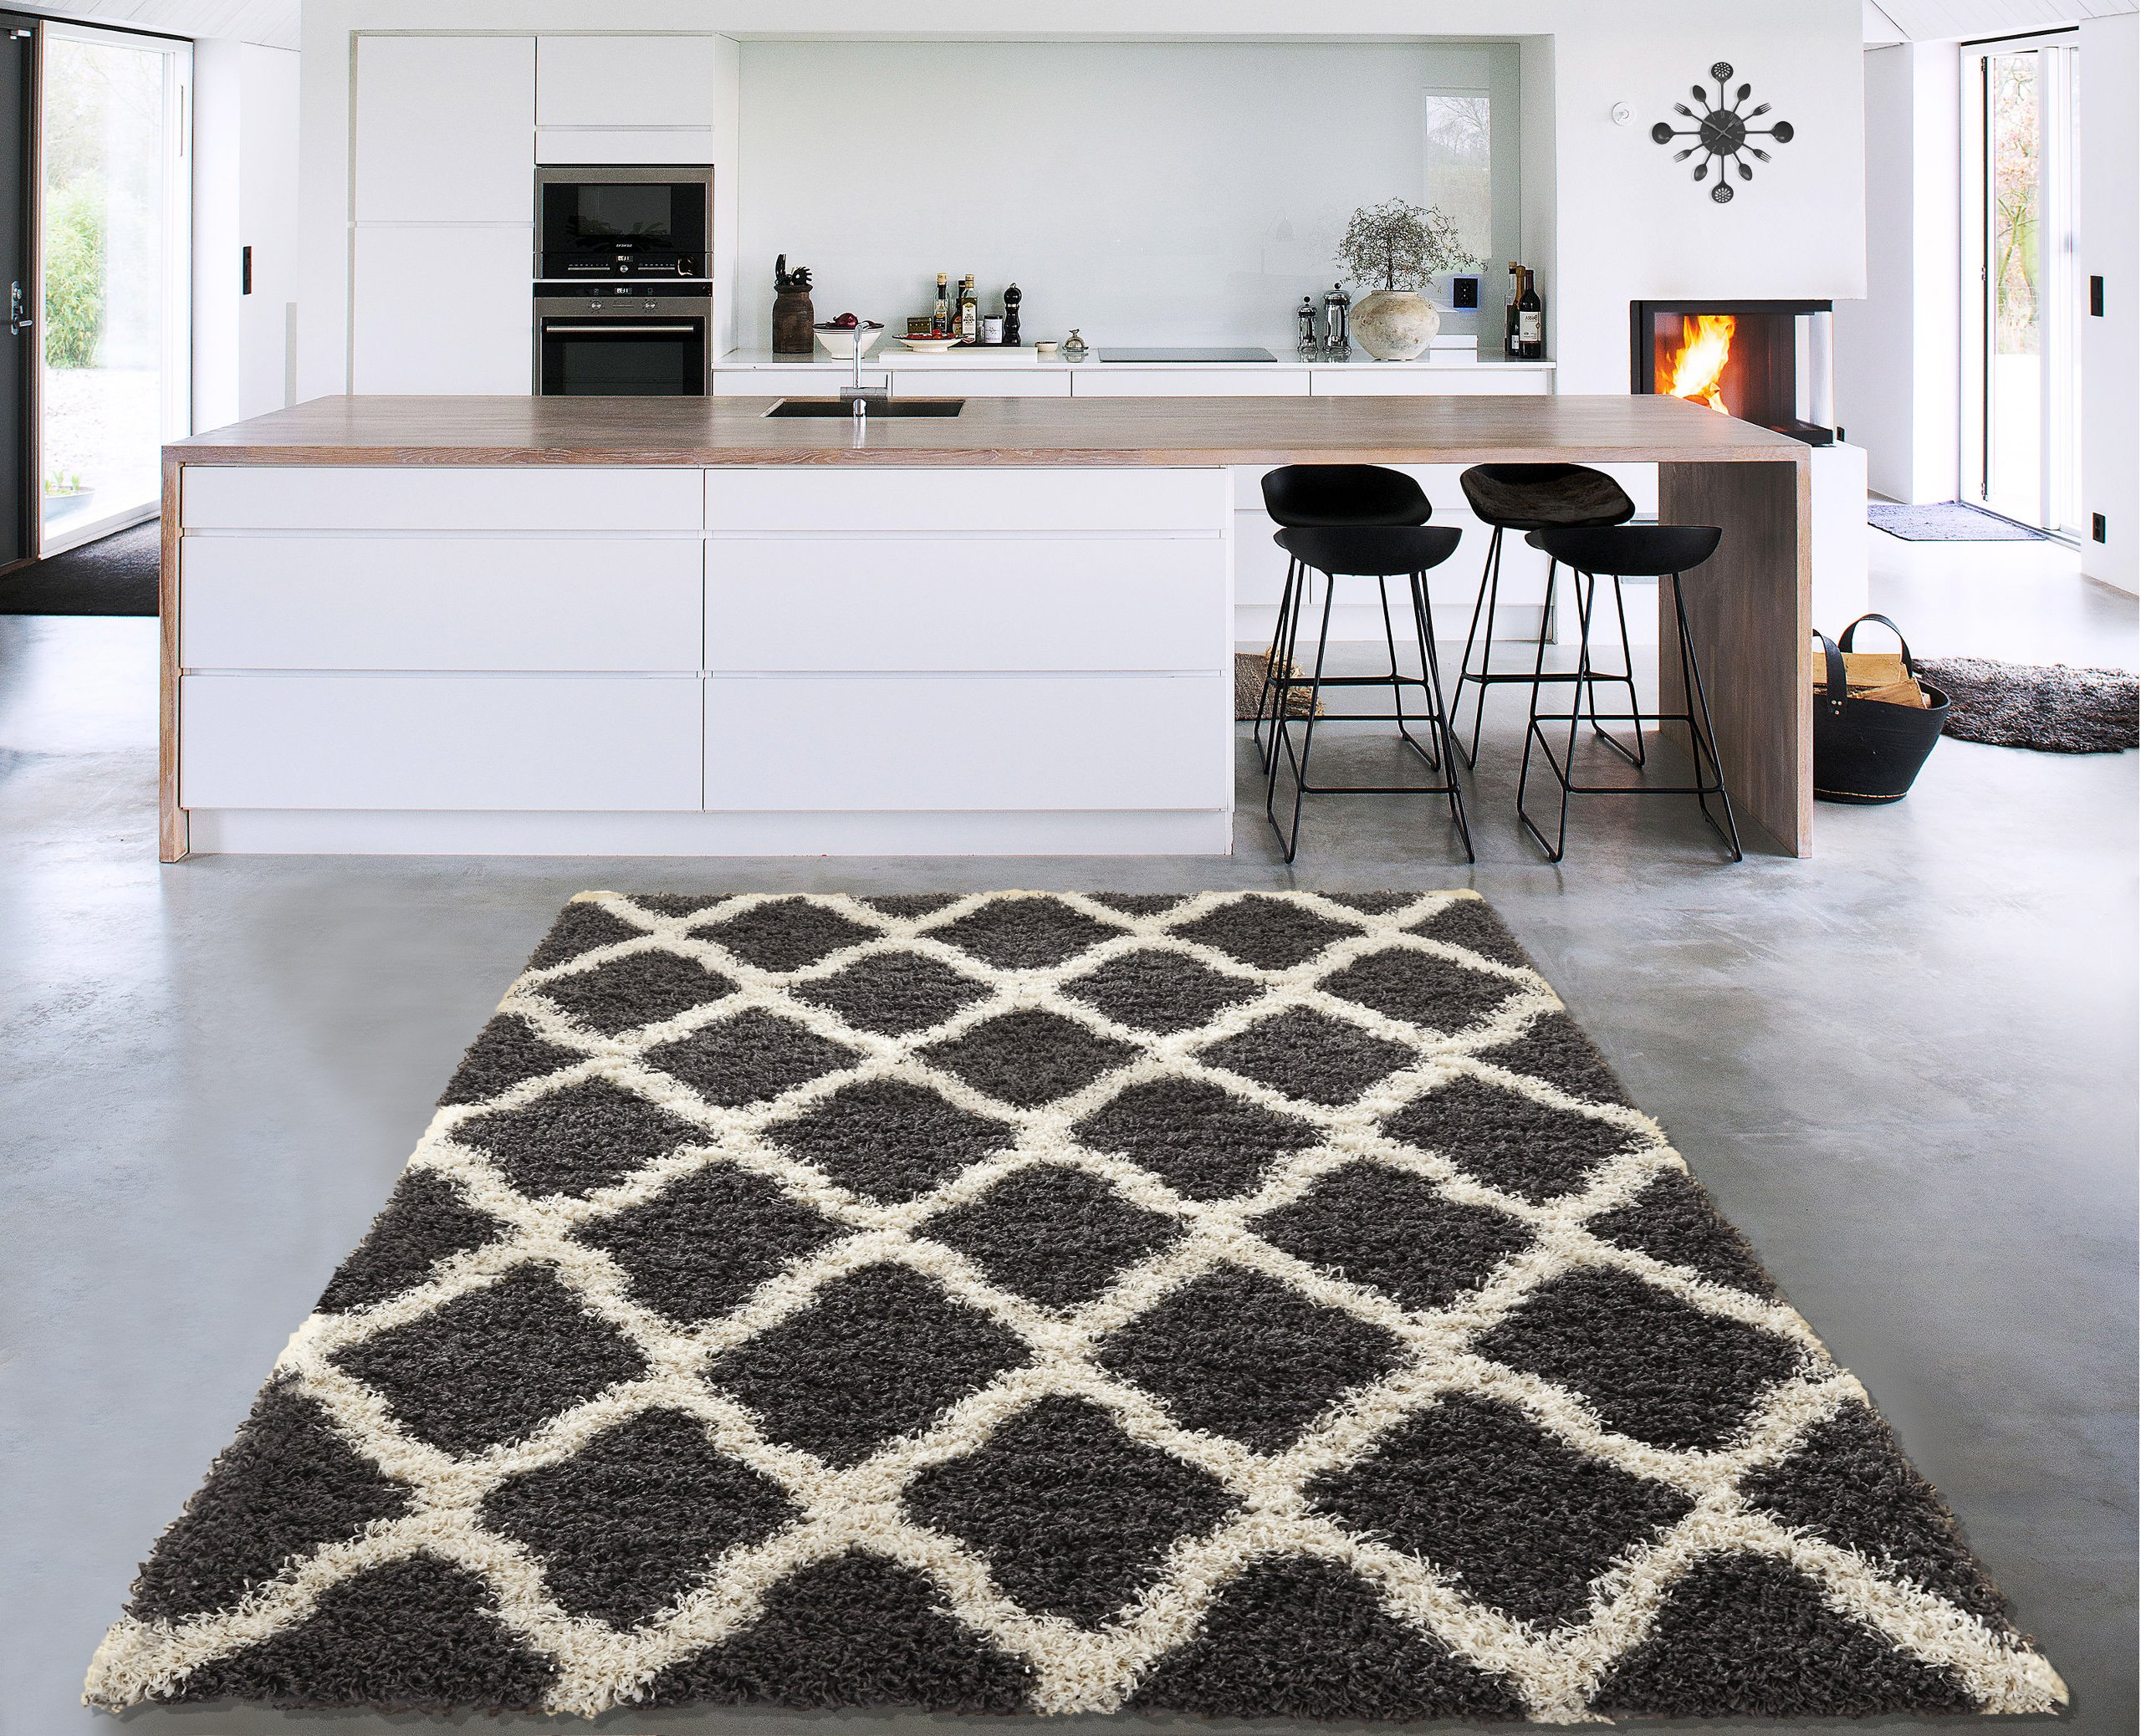 Sweet Home Stores Cozy Shag Collection Charcoal Moroccan Trellis Design Shag Rug Contemporary Living & Bedroom Soft Shaggy Area Rug,   Grey & Cream,  94'' L x 118'' W